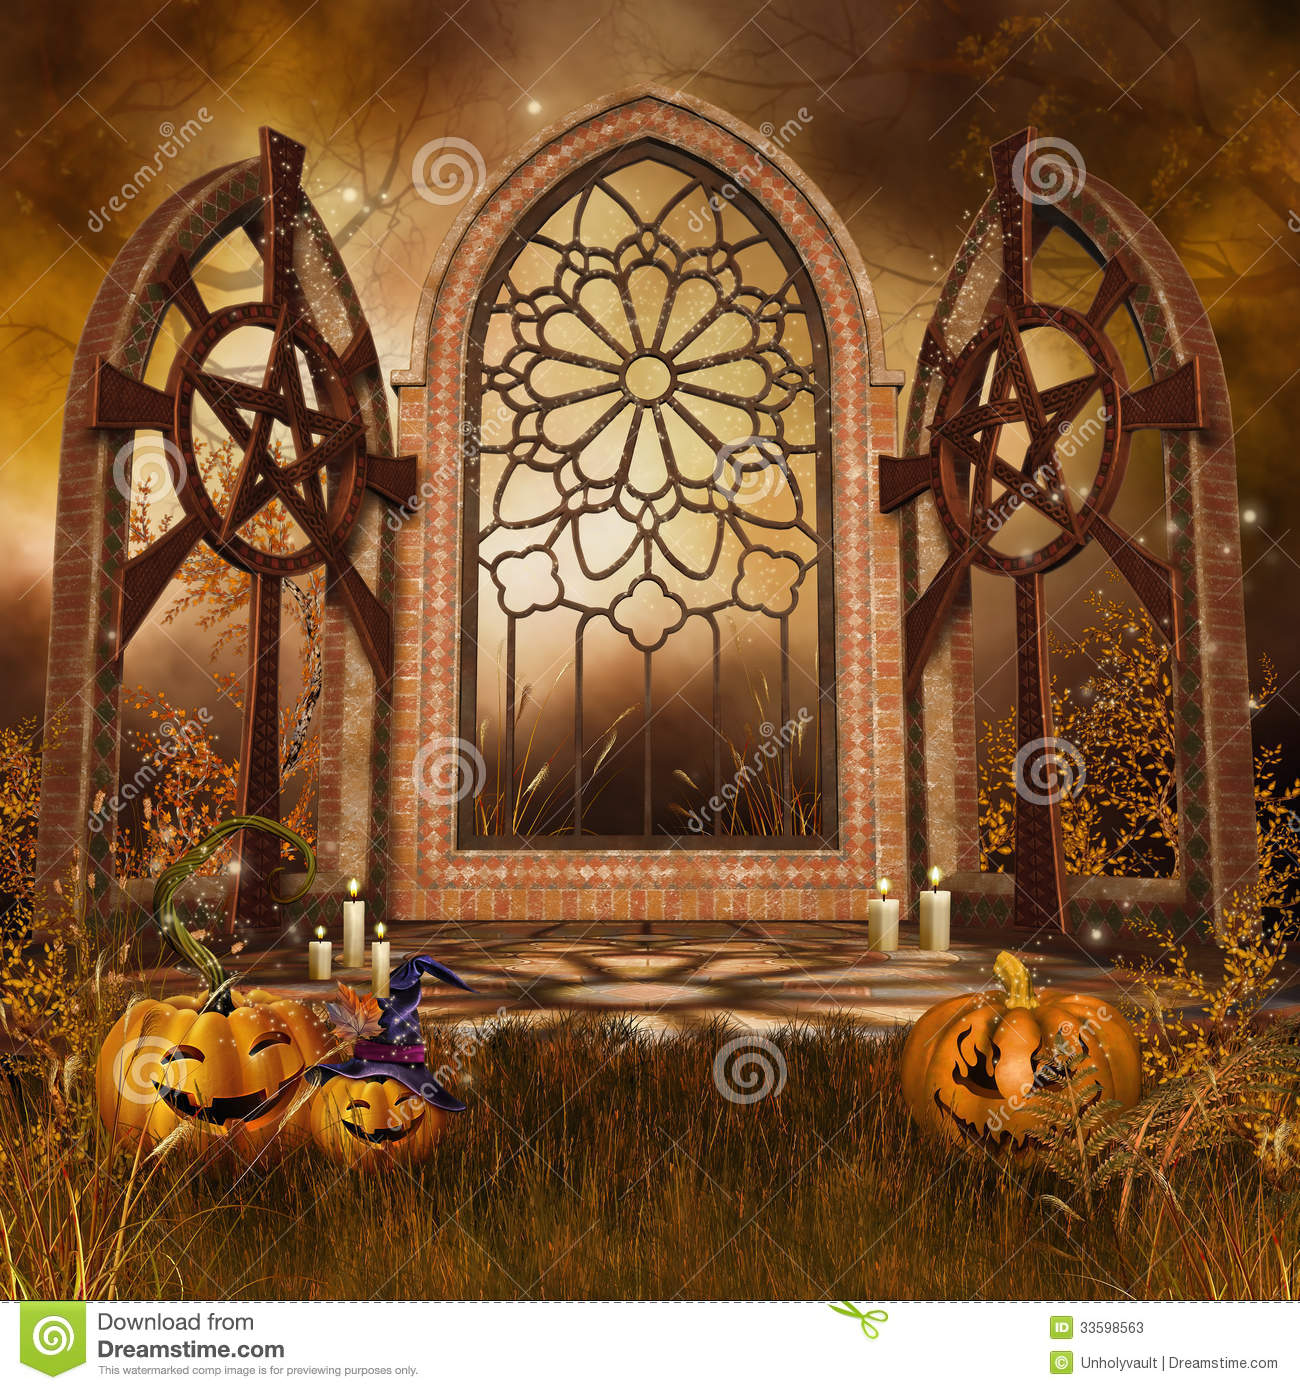 Cute Halloween Wallpaper Backgrounds Gothic Shrine With Pumpkins Stock Illustration